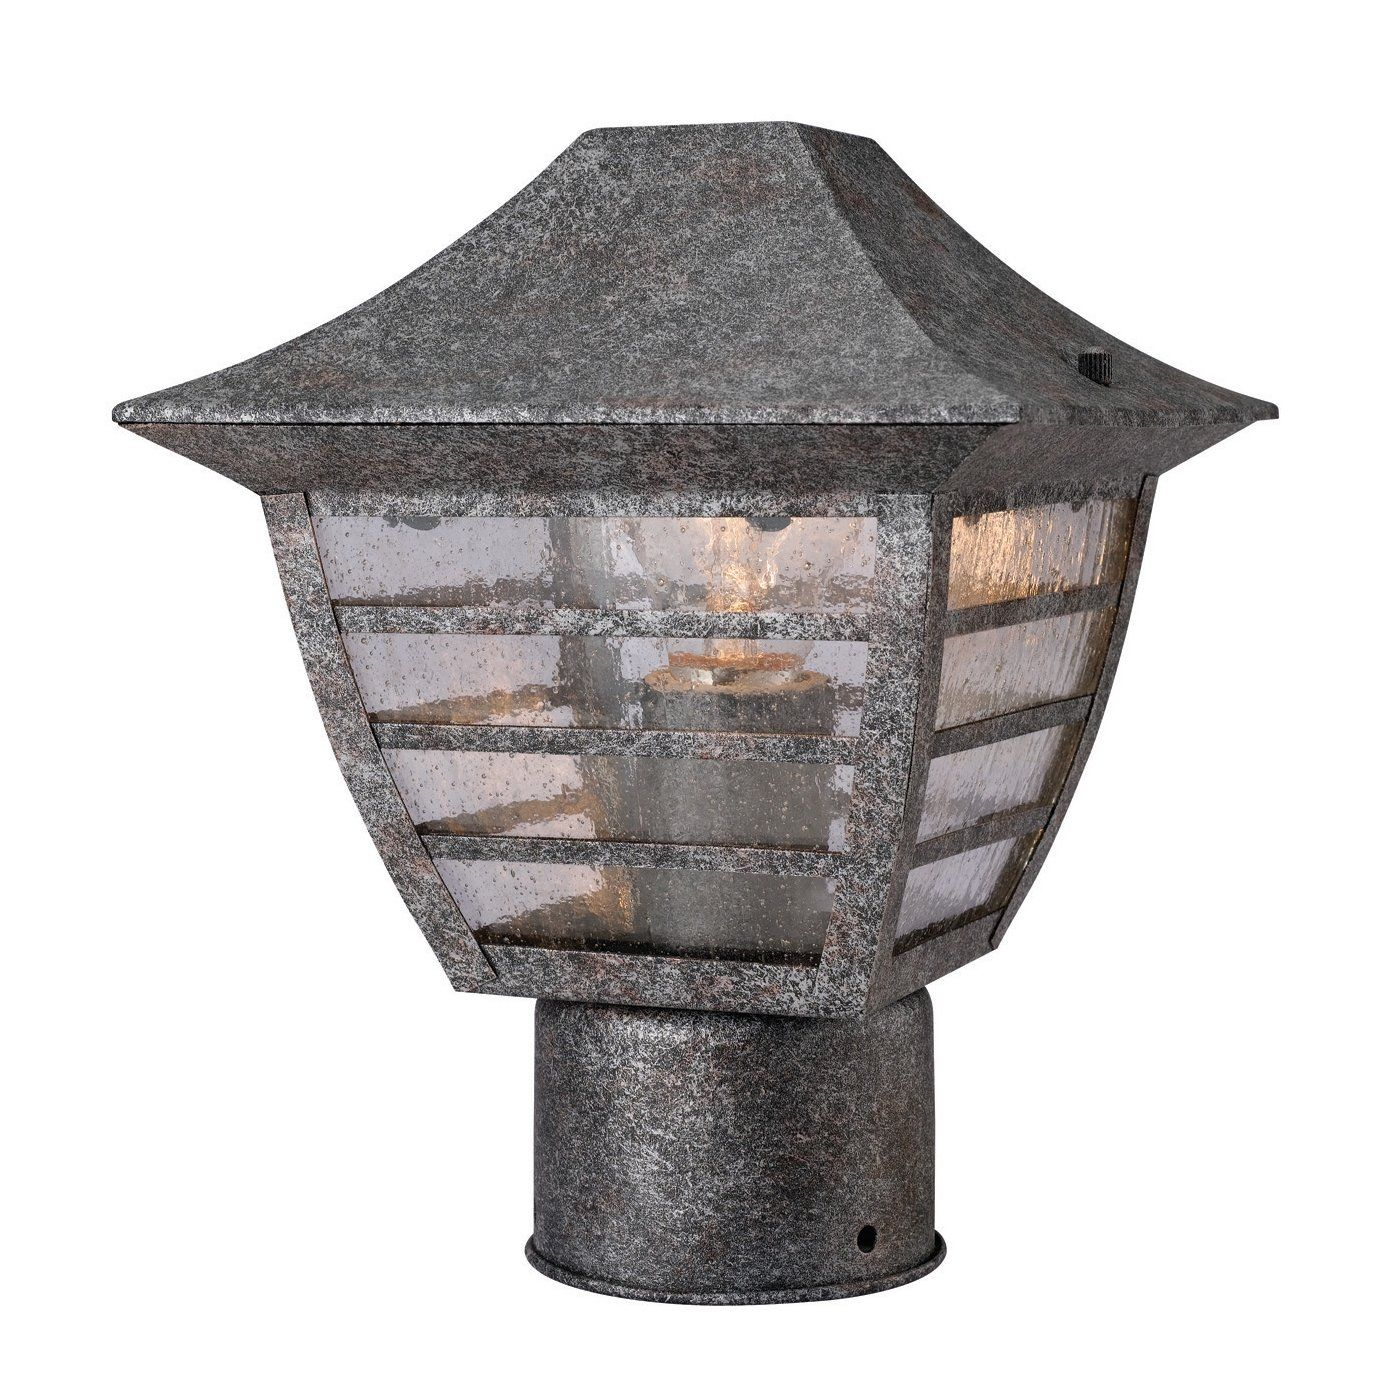 Galaxy Lighting 11 5 In H Antique Silver Outdoor Wall Light At